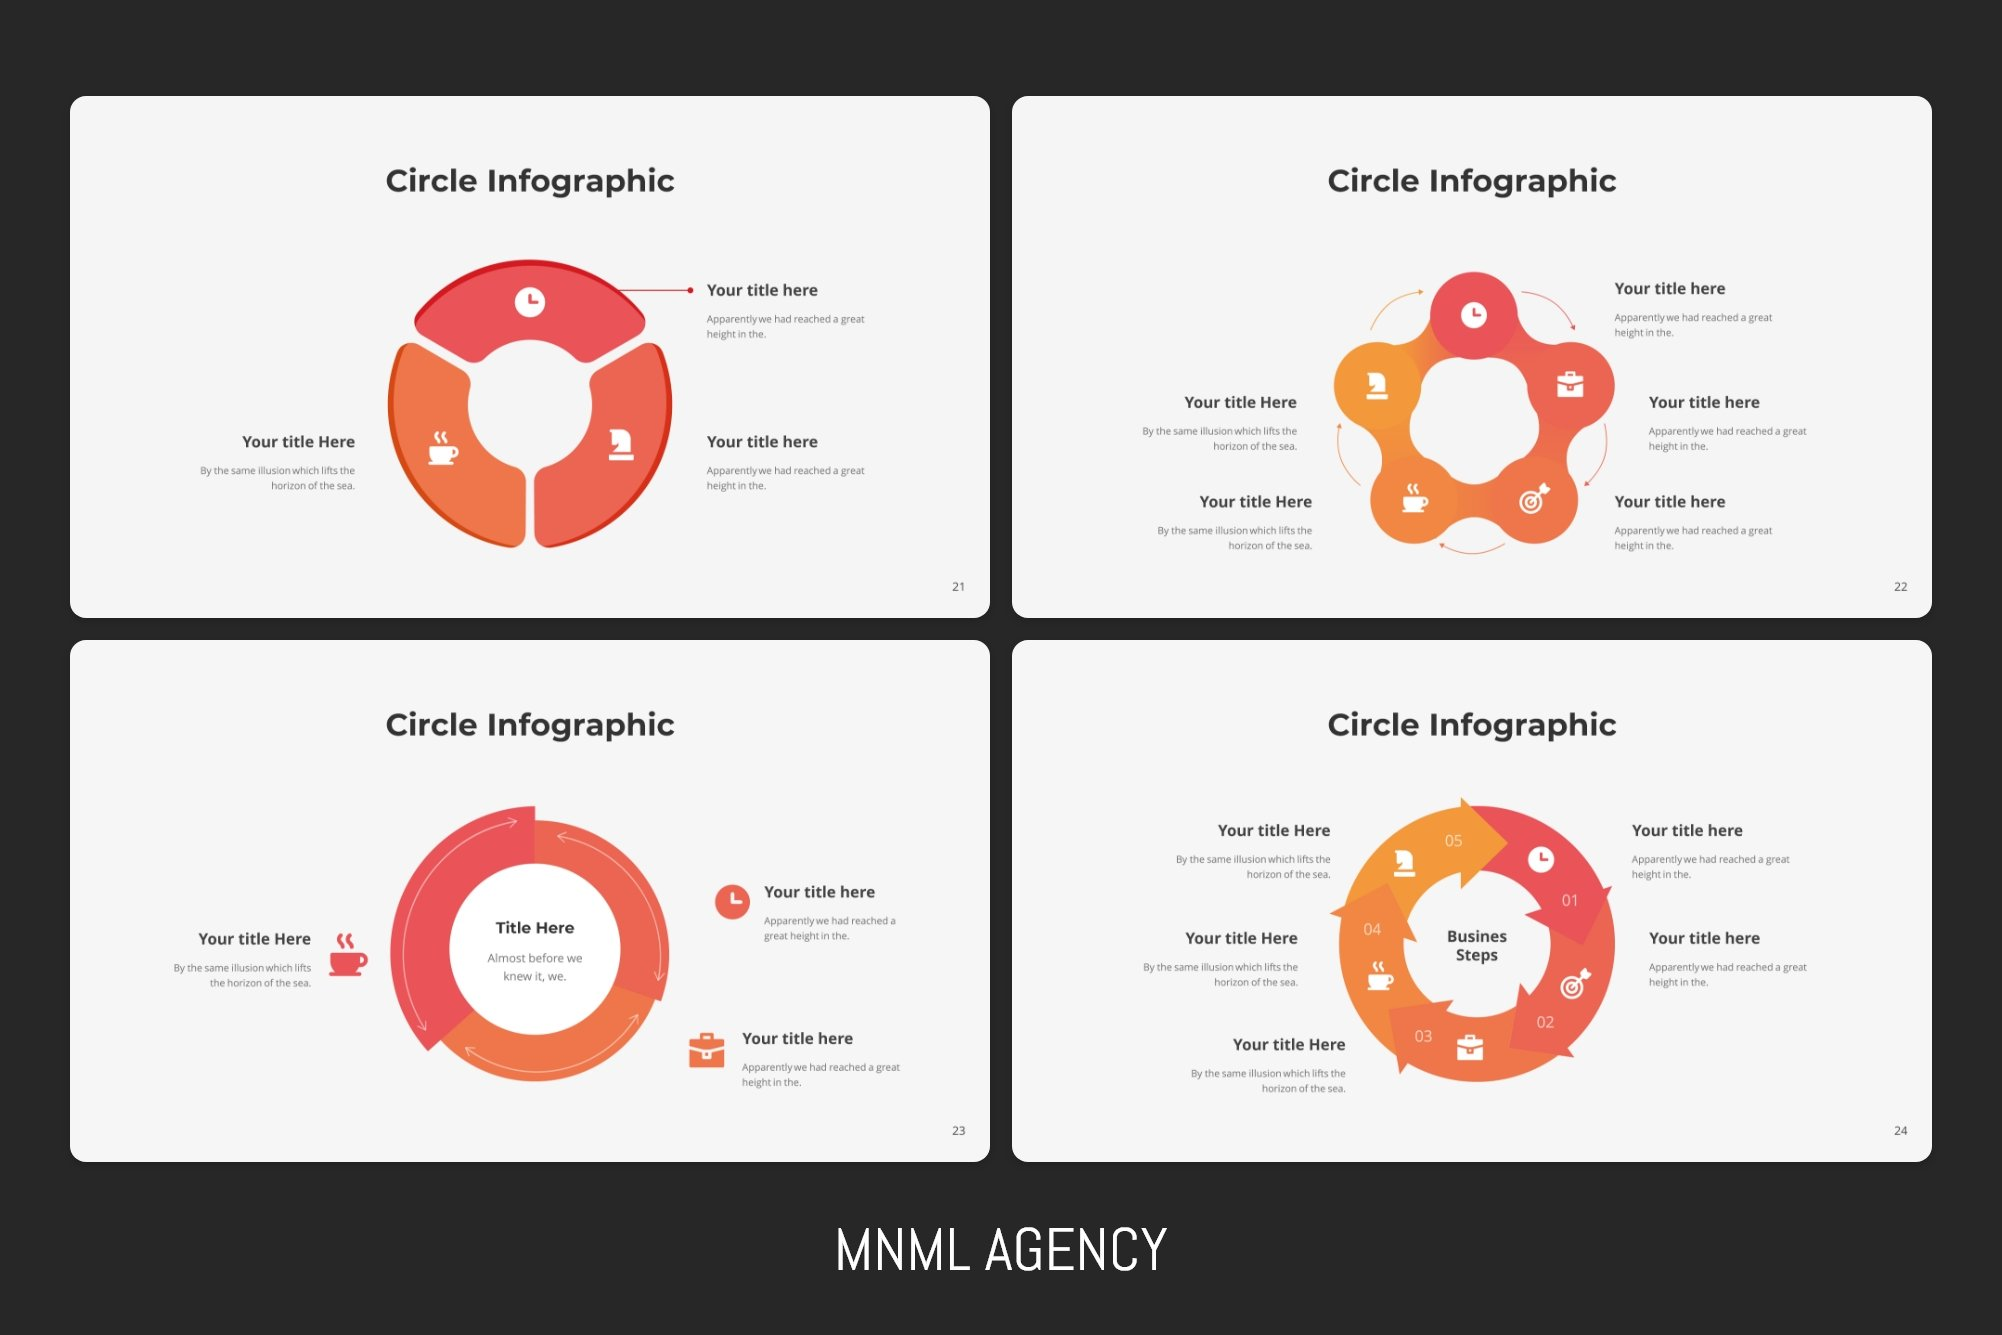 Very different variations of circular infographics.